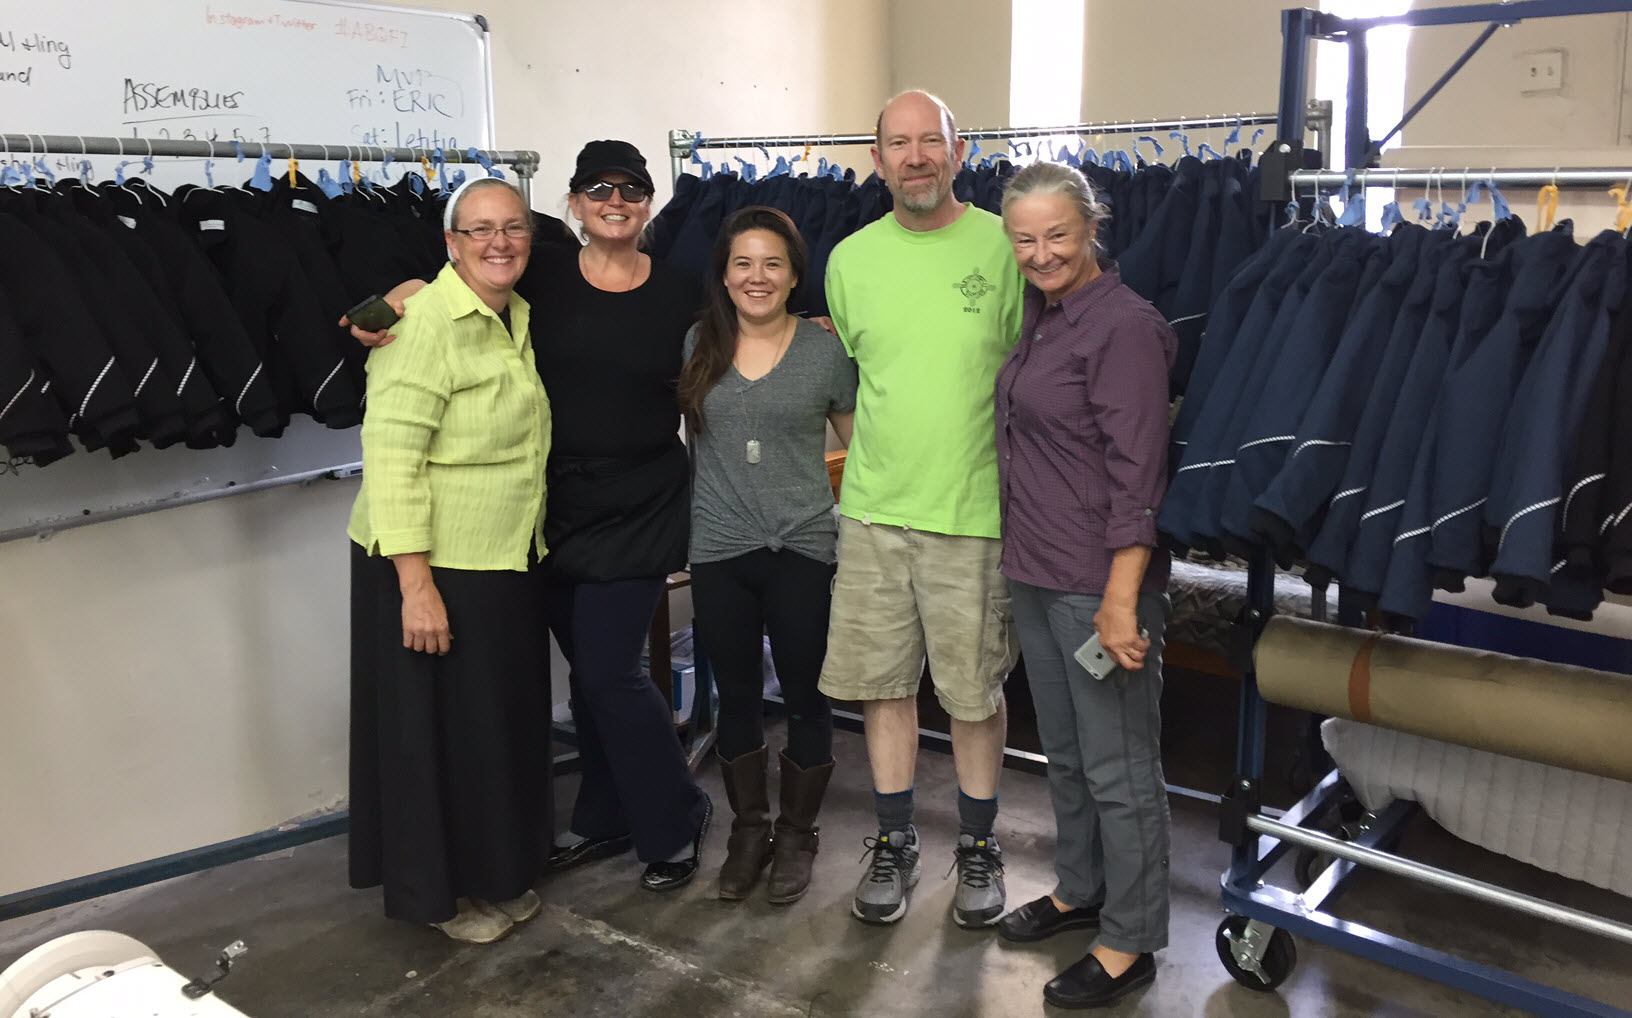 The late team L-R: Faith, Susan, Jamie, Eric and Jane. This is what 100 coats look like.